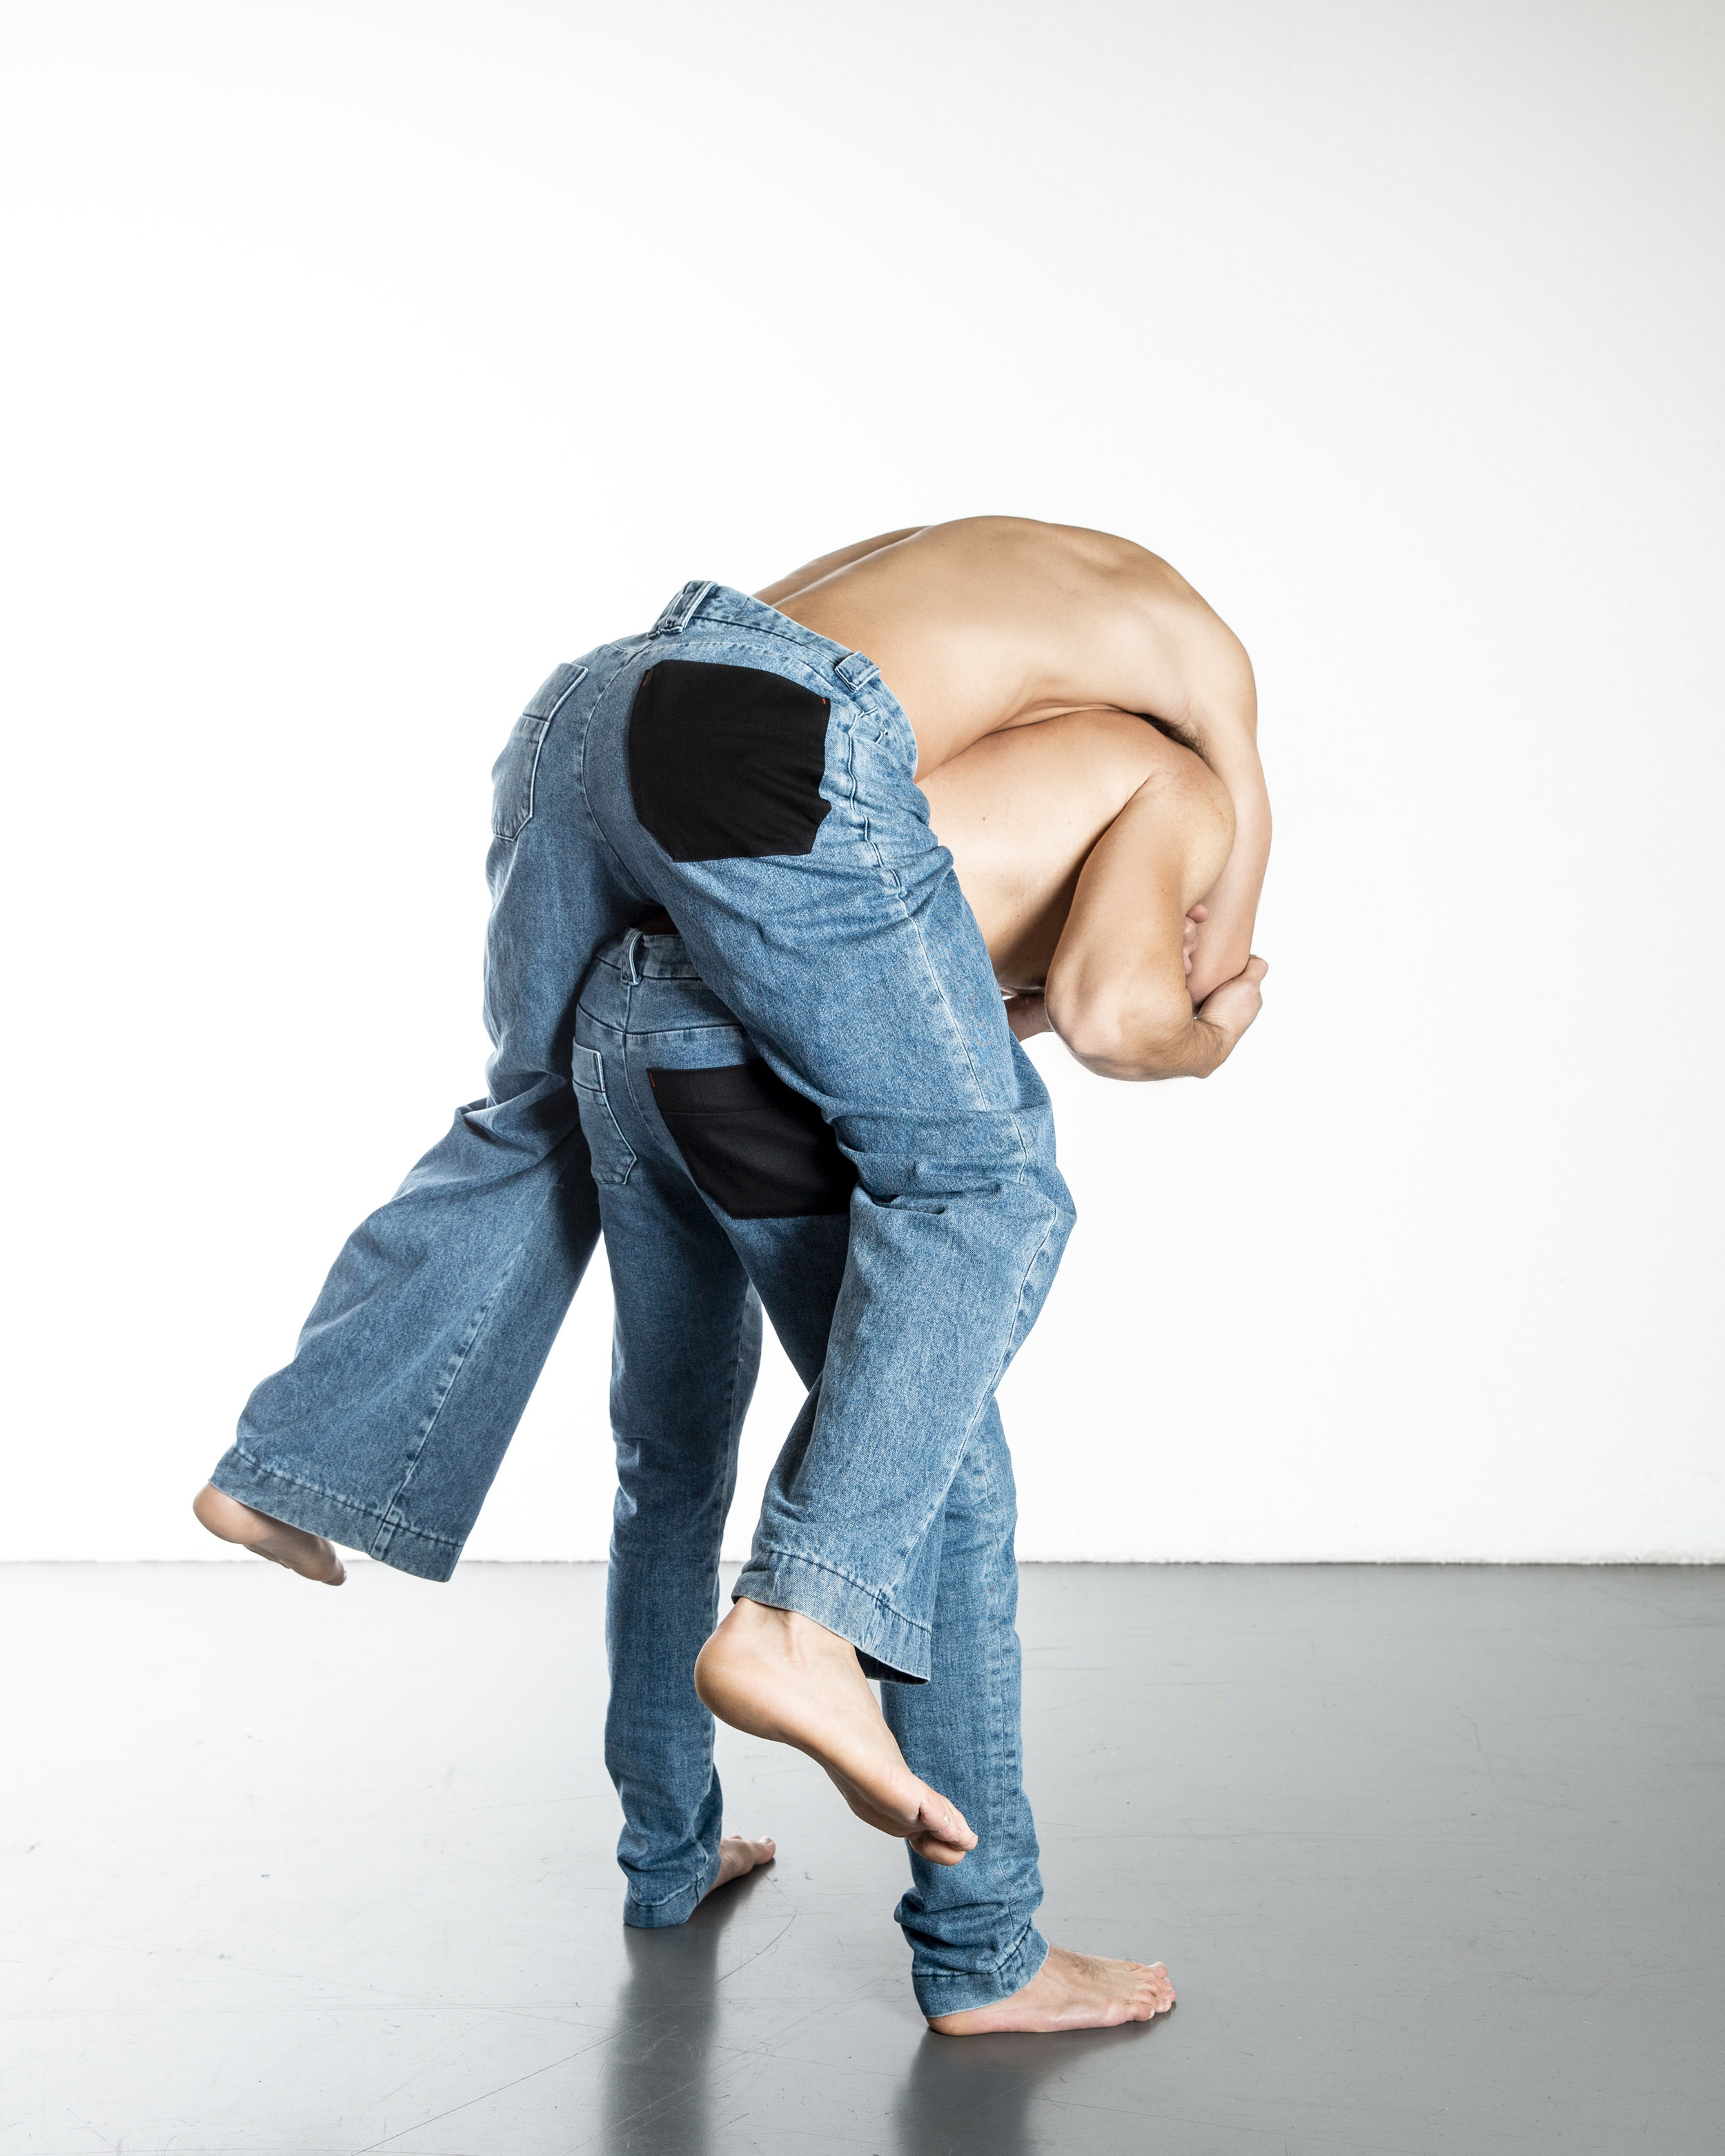 THE CHALLENGE - Forbidden Denimeries was founded by Mikael Vilchez in 2018. It challenges menswear codes by offering uninhibited garments inspired by references ranging from feminine to masculine figures, popular to classical culture, through a denim vocabulary.